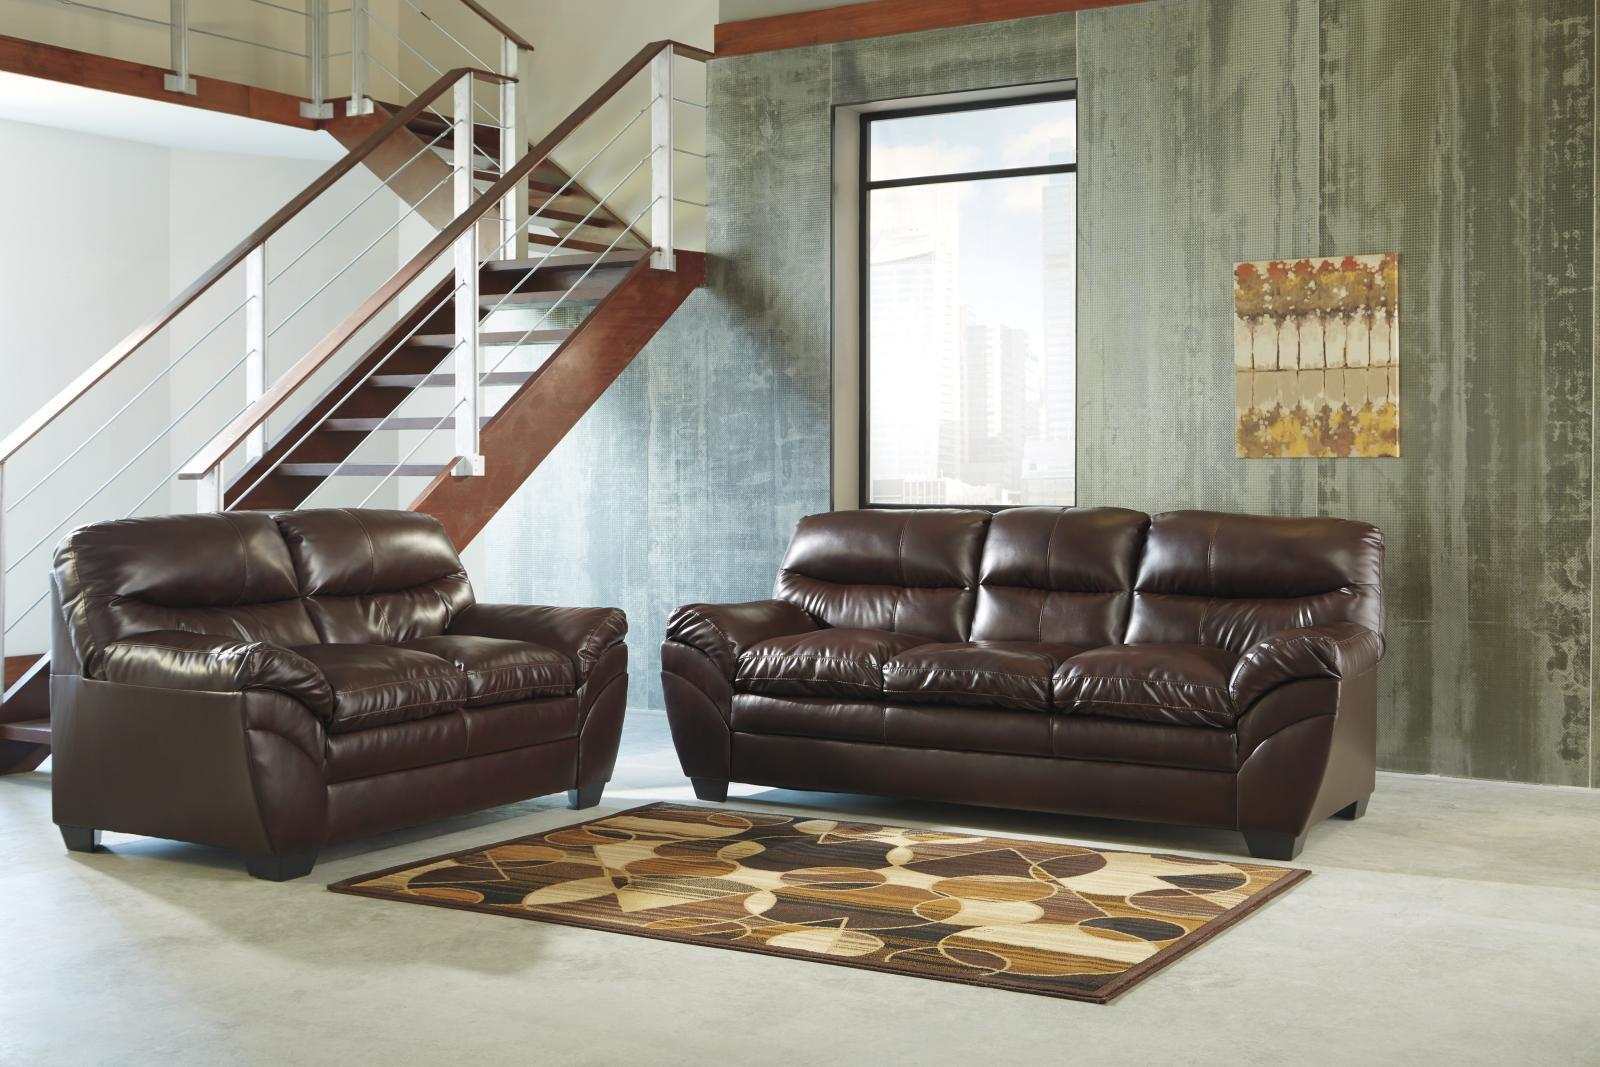 Ashley Tassler DuraBlend Living Room Set 2pcs in Mahogany Contemporary Style